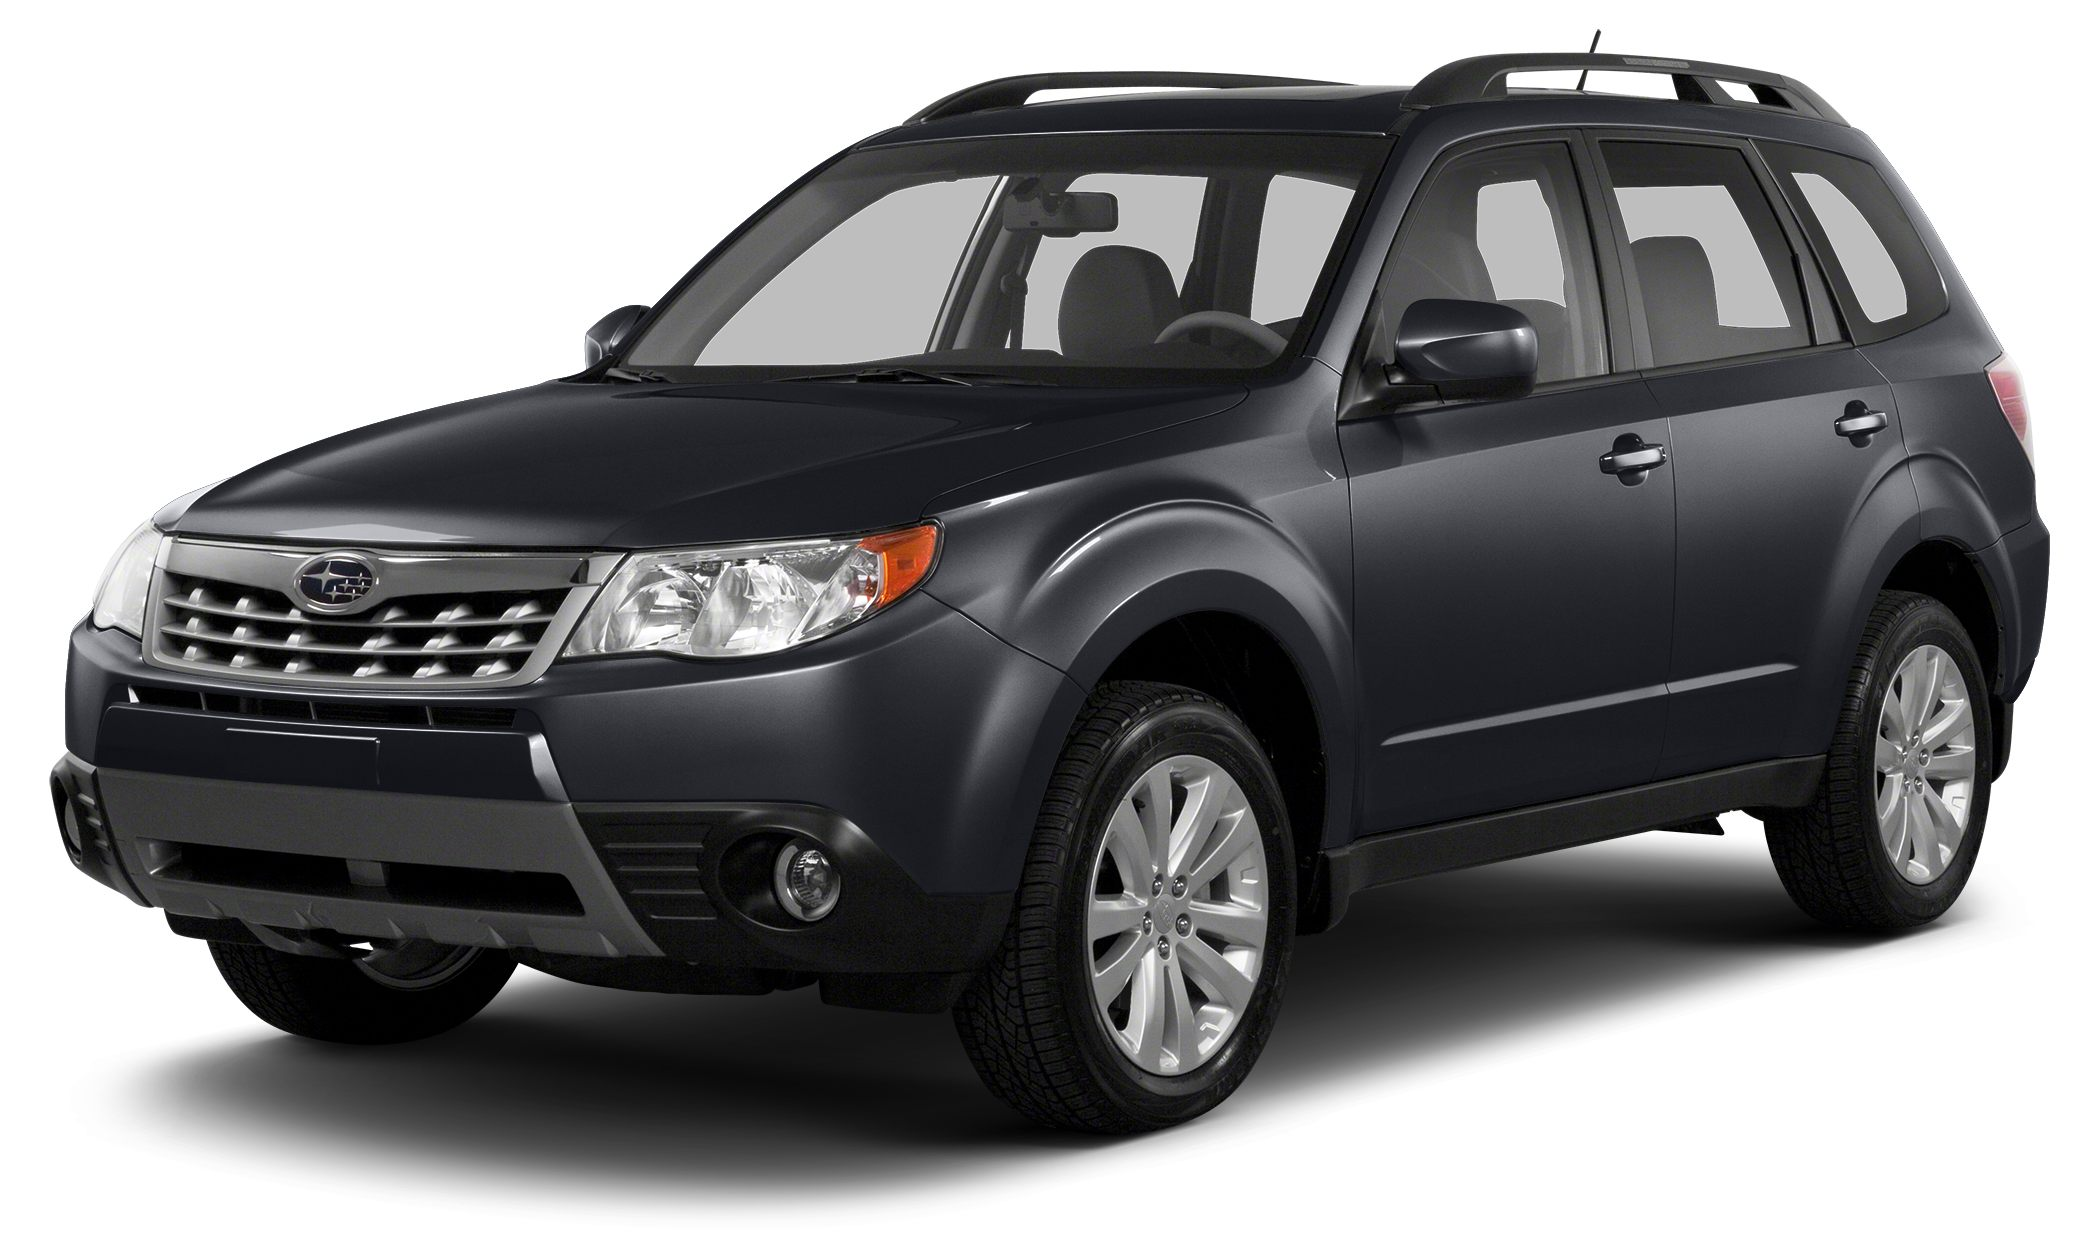 2013 Subaru Forester 25X 1700 below Kelley Blue Book EPA 27 MPG Hwy21 MPG City 25X trim C